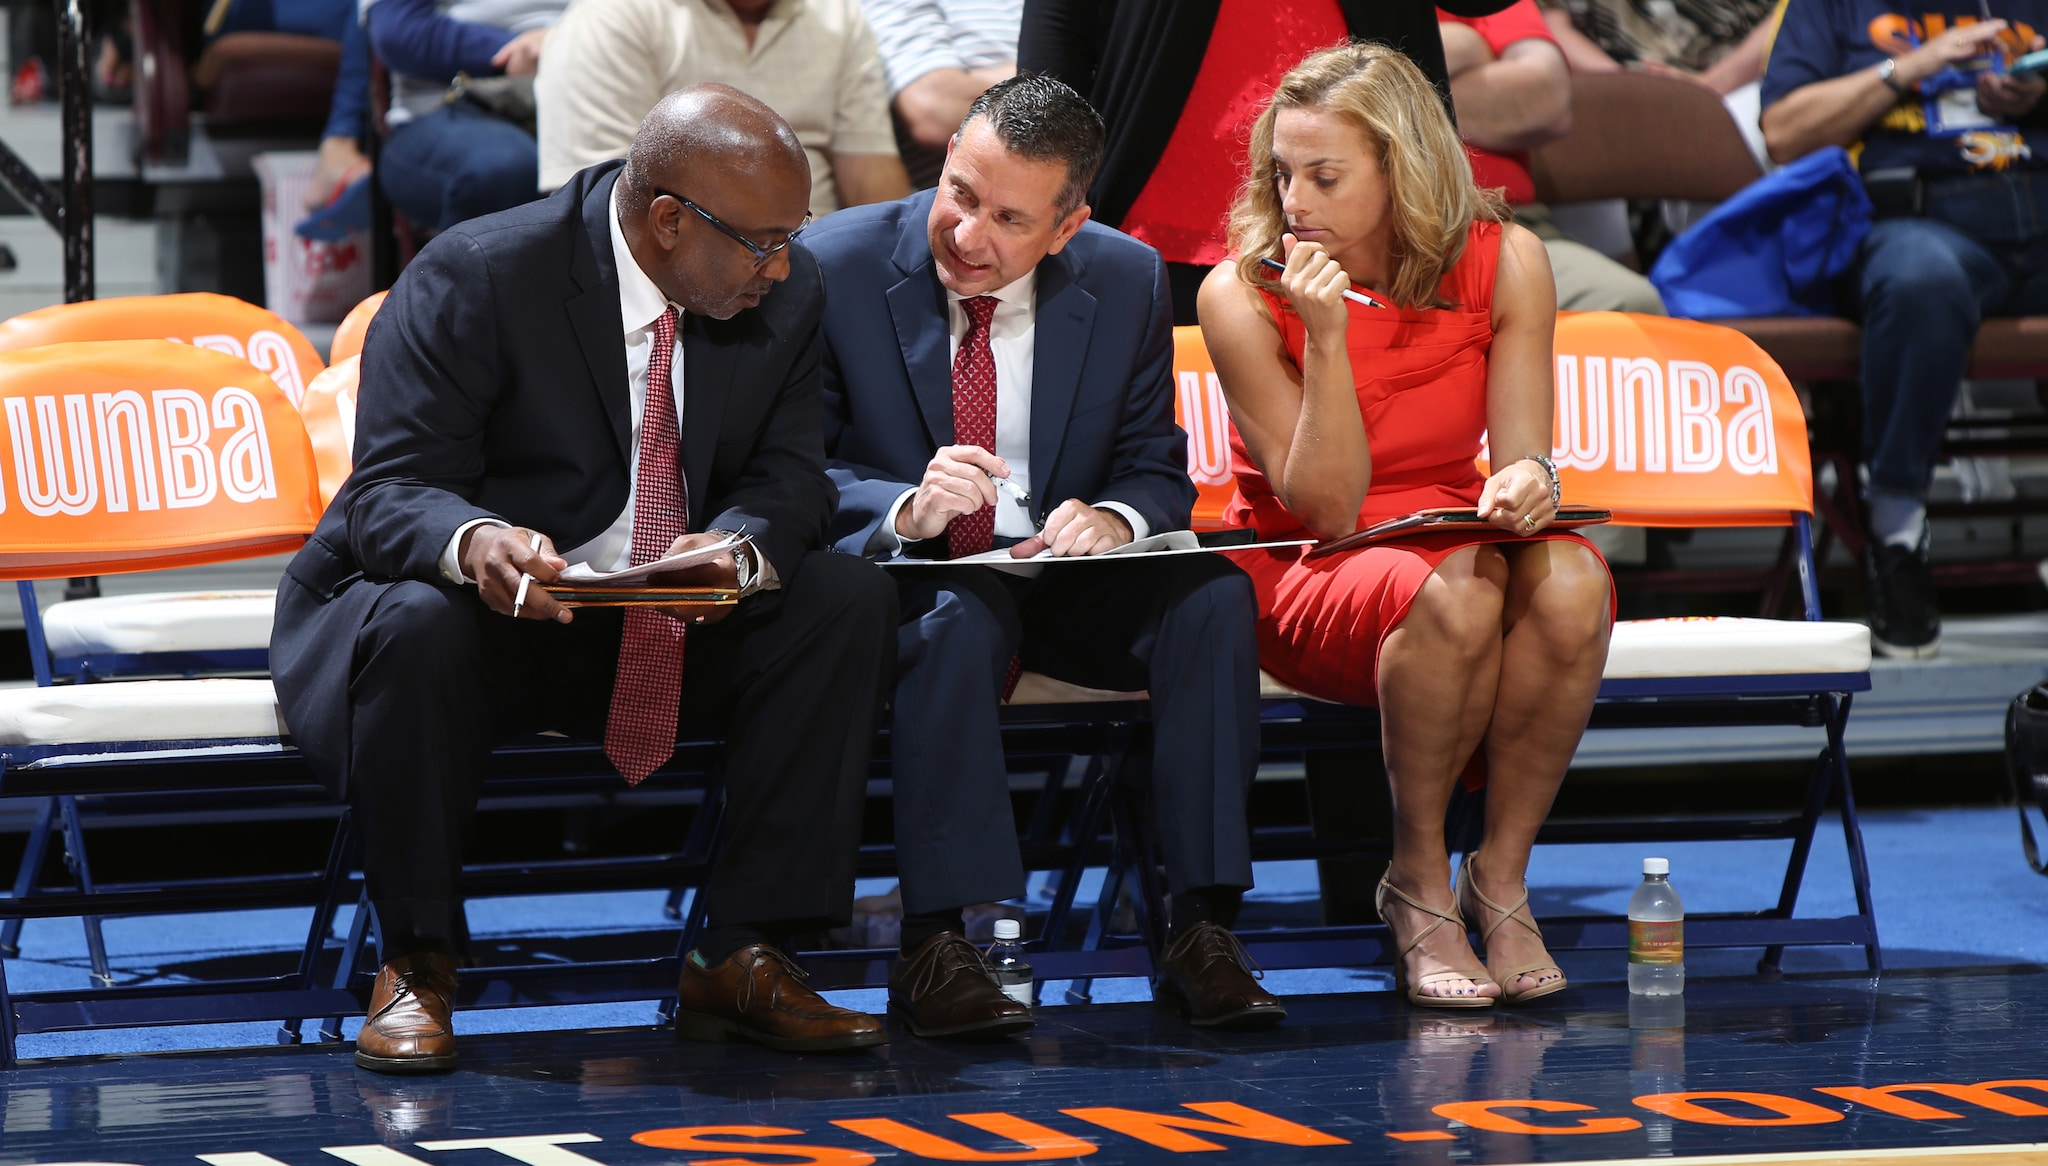 UNCASVILLE, CT - AUGUST 30:  (L-R) Steve Smith, Curt Miller and Nicki Collen, the coaching staff of the Connecticut Sun on the bench during the game against the San Antonio Stars on August 30, 2016 at the Mohegan Sun Arena in Uncasville, Connecticut. NOTE TO USER: User expressly acknowledges and agrees that, by downloading and/or using this Photograph, user is consenting to the terms and conditions of the Getty Images License Agreement. Mandatory Copyright Notice: Copyright 2016 NBAE (Photo by Chris Marion/NBAE via Getty Images)